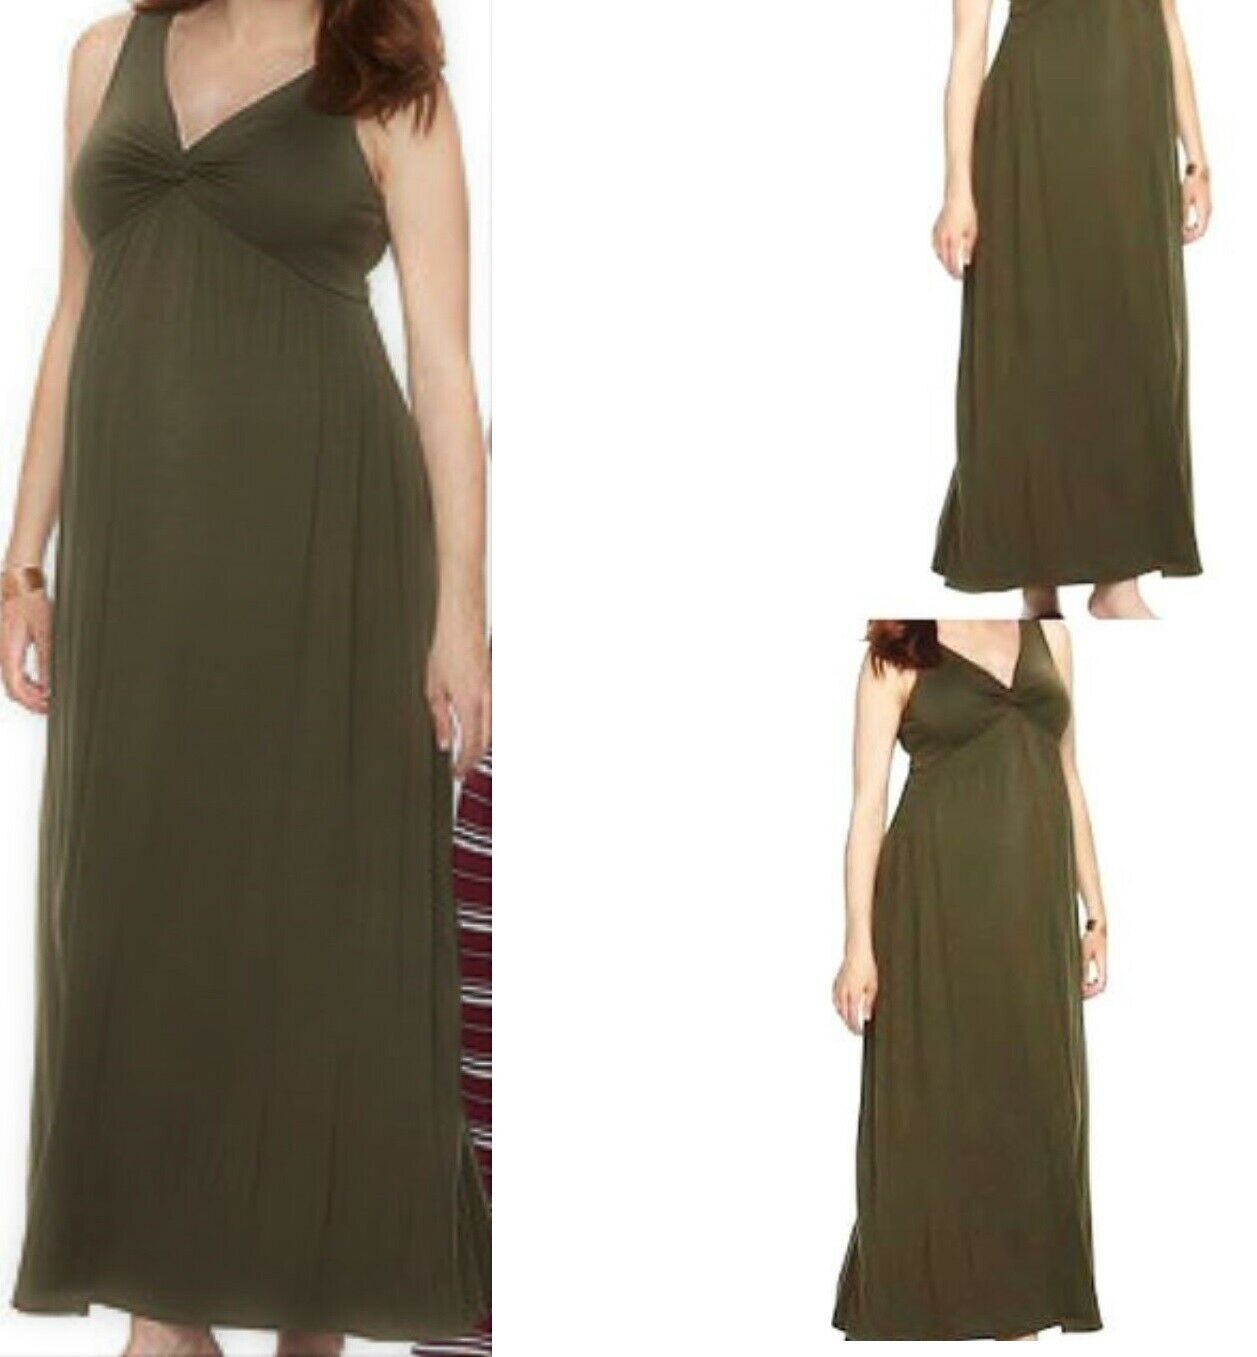 Long Flowing Maxi Maternity Dress Gown Stretchy Comfort Gorgeous Olive By A Glow For Sale Online